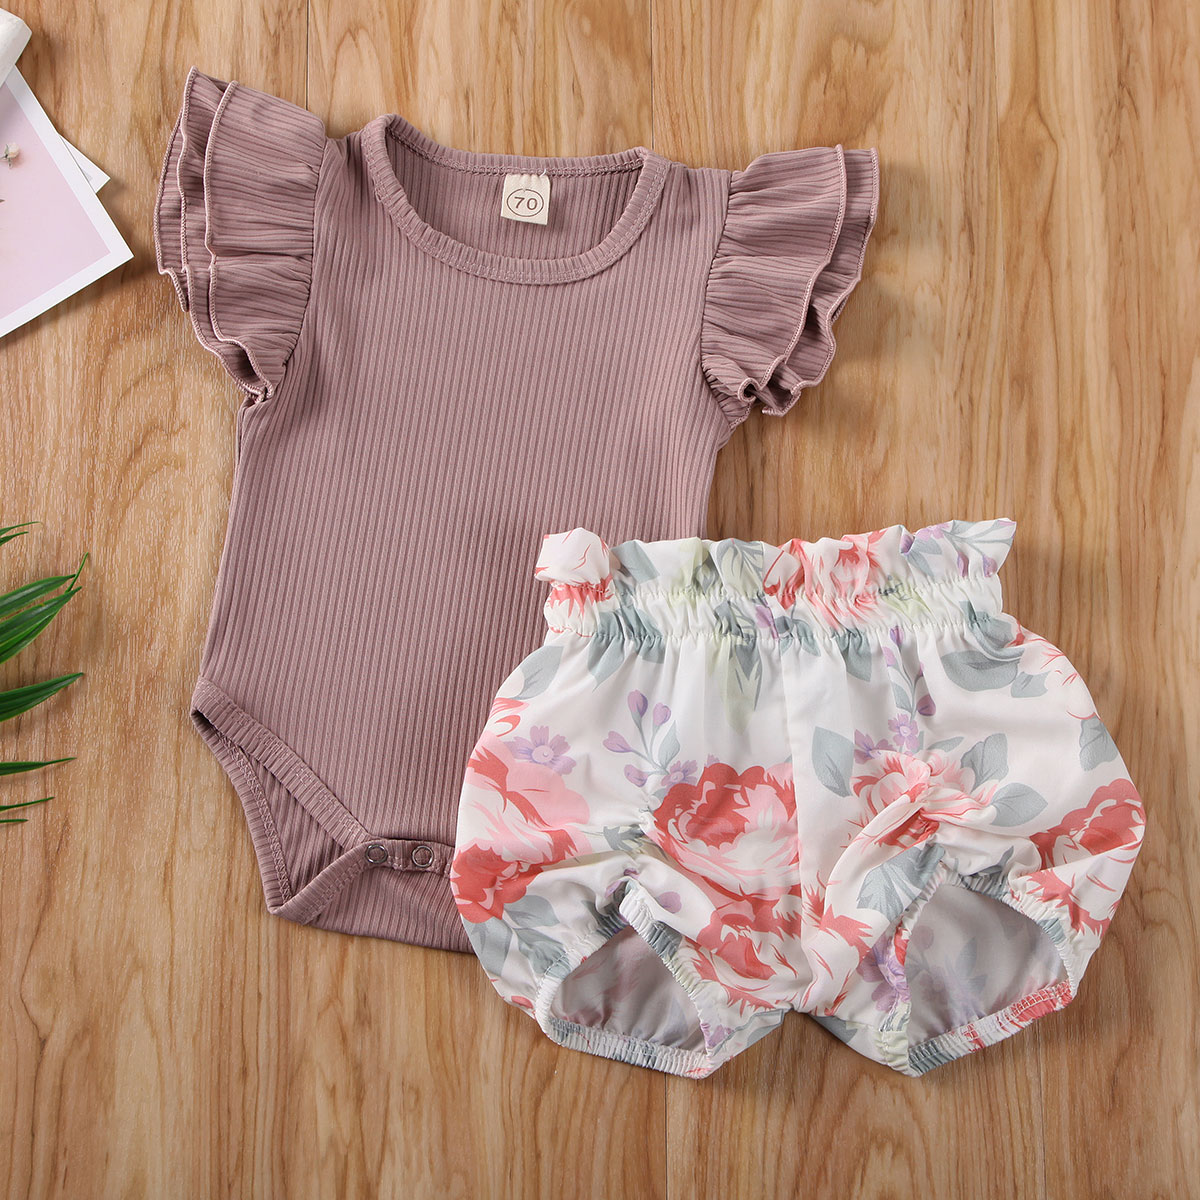 Pudcoco Newborn Baby Girl Clothes Solid Color Knitted Cotton Romper Tops Flower Print Short Pants 2Pcs Outfits Clothes